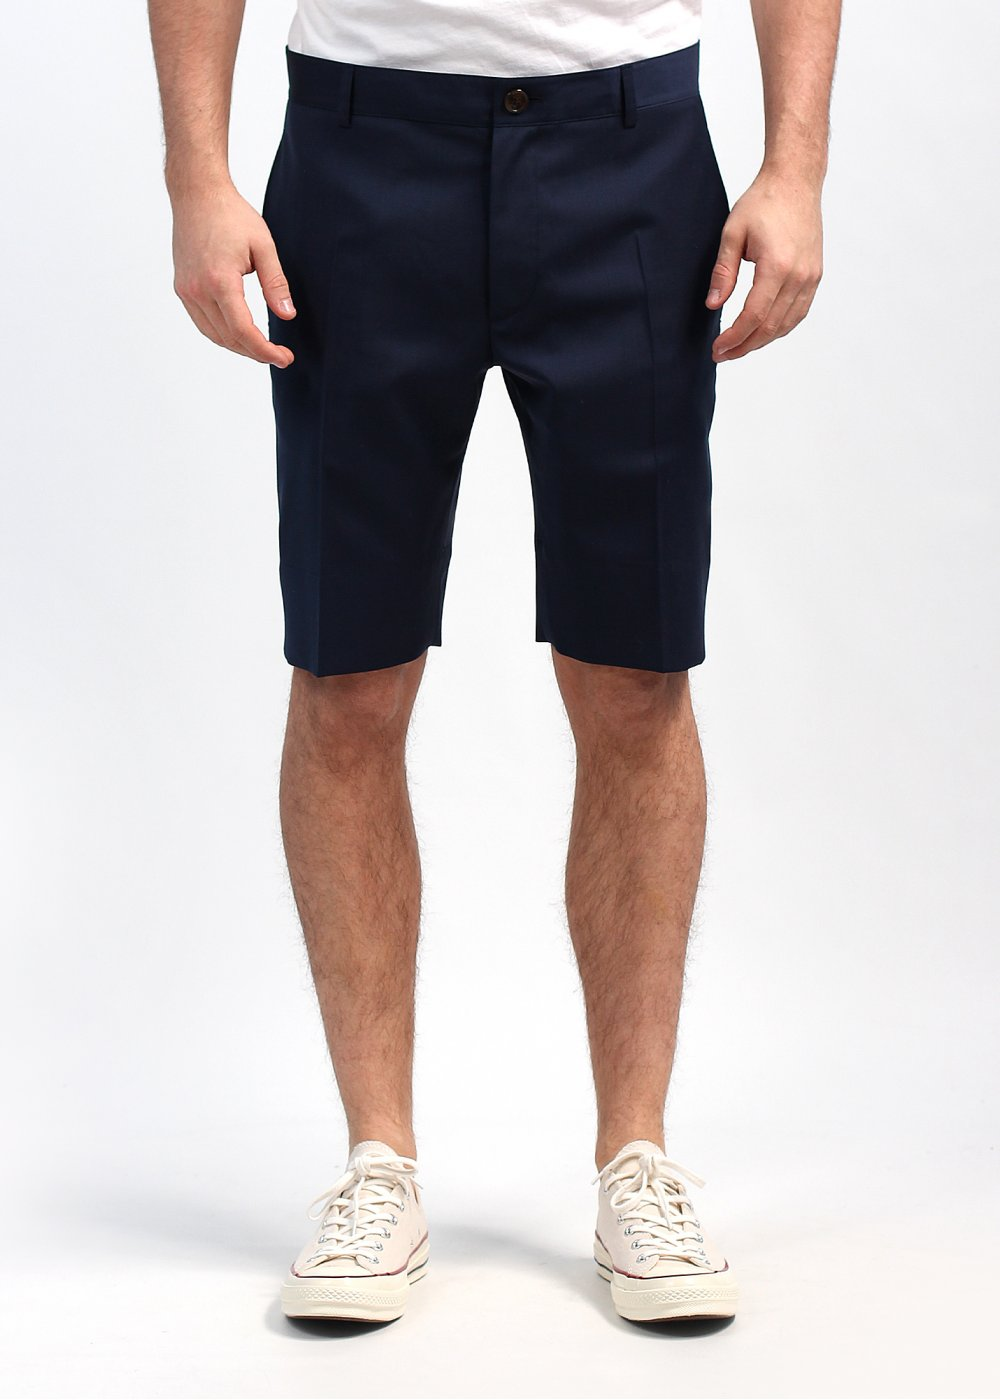 Discover casual and tailored designs in our men's shorts collection. Pure cotton and breathable blends with a hint of stretch give you a comfortable fit.